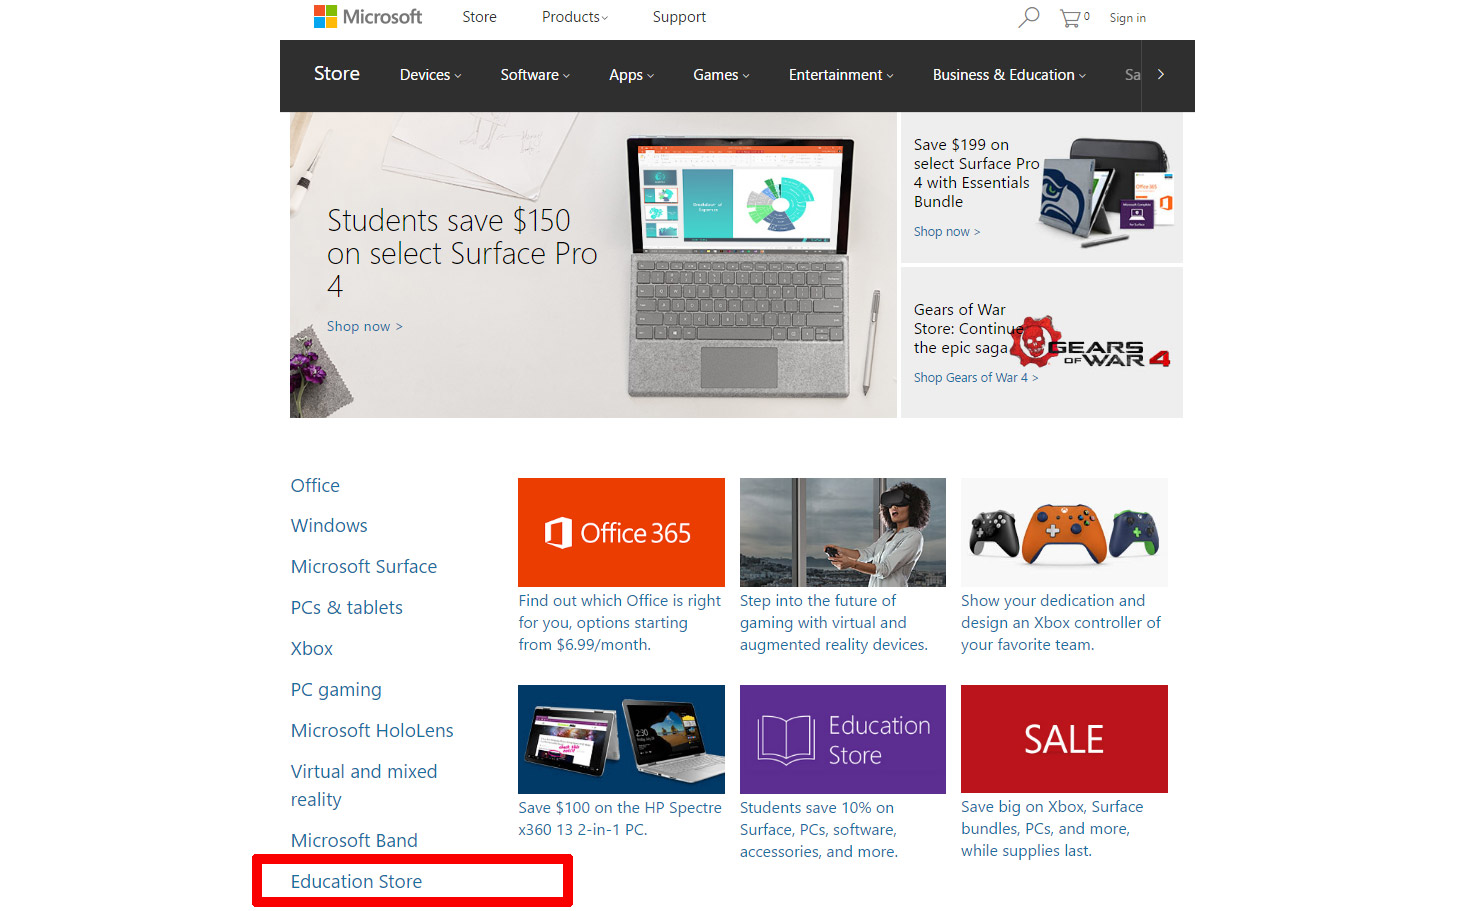 microsoft removes lumia smartphones from store homepage